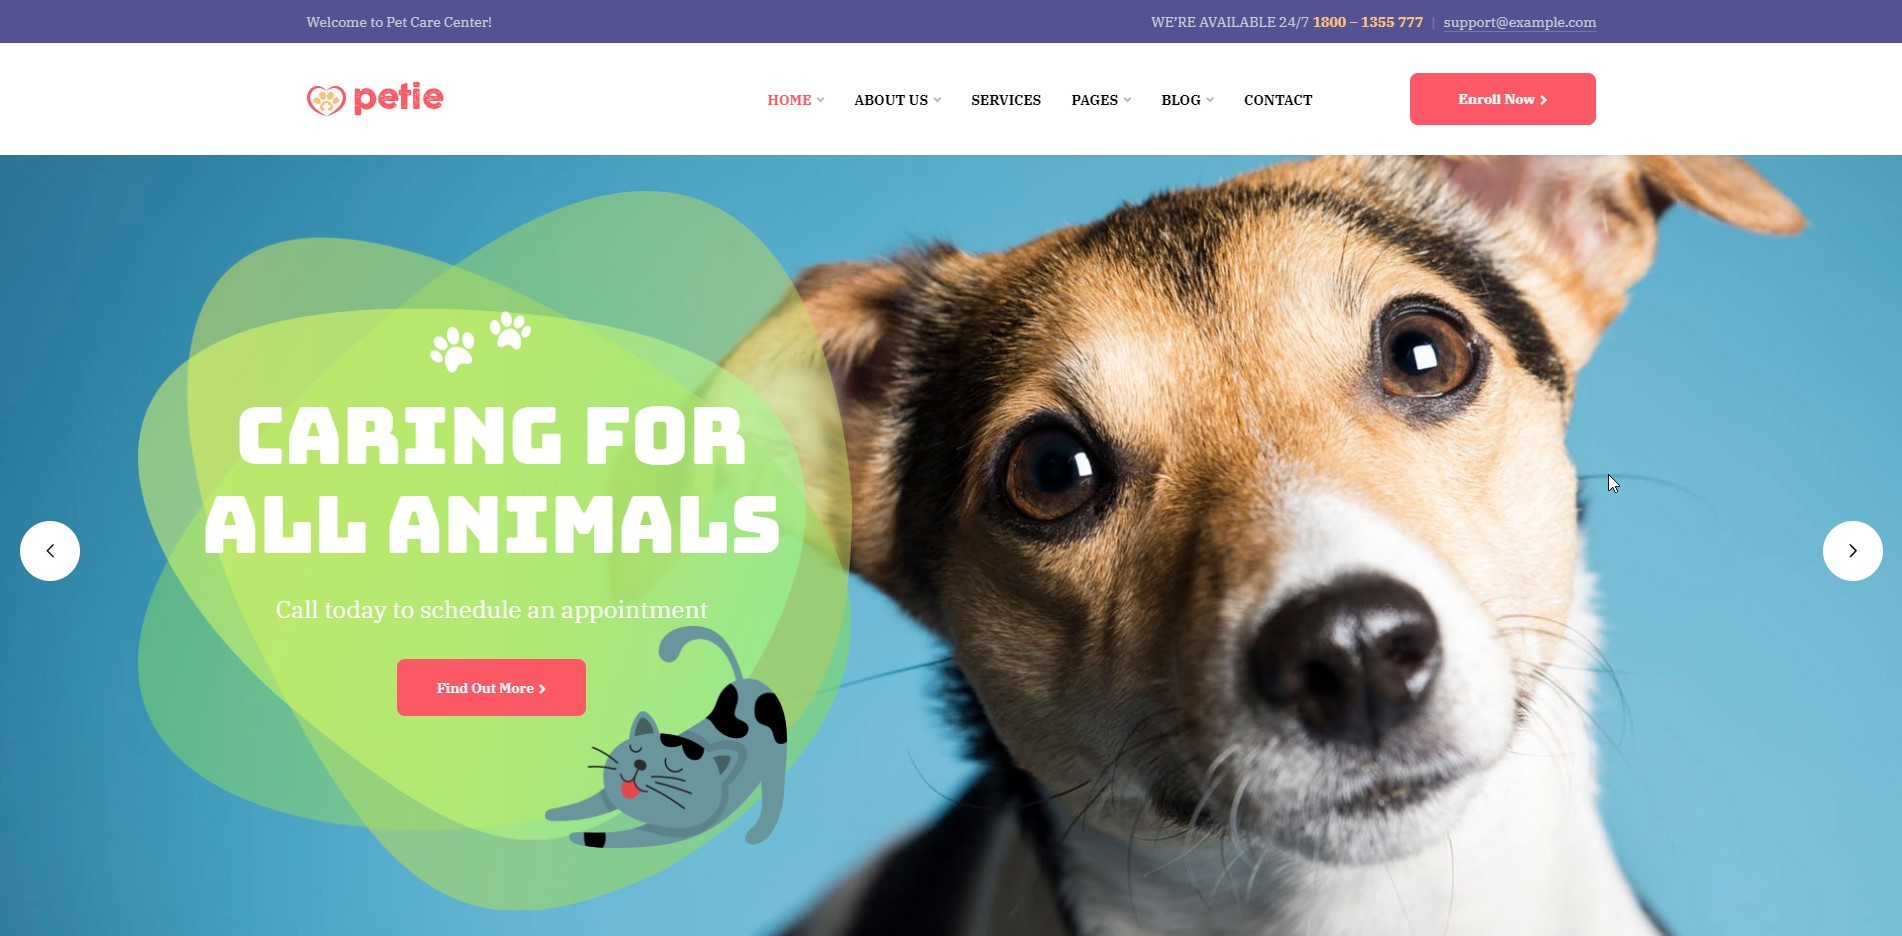 Petie - Pet Center WordPress Theme